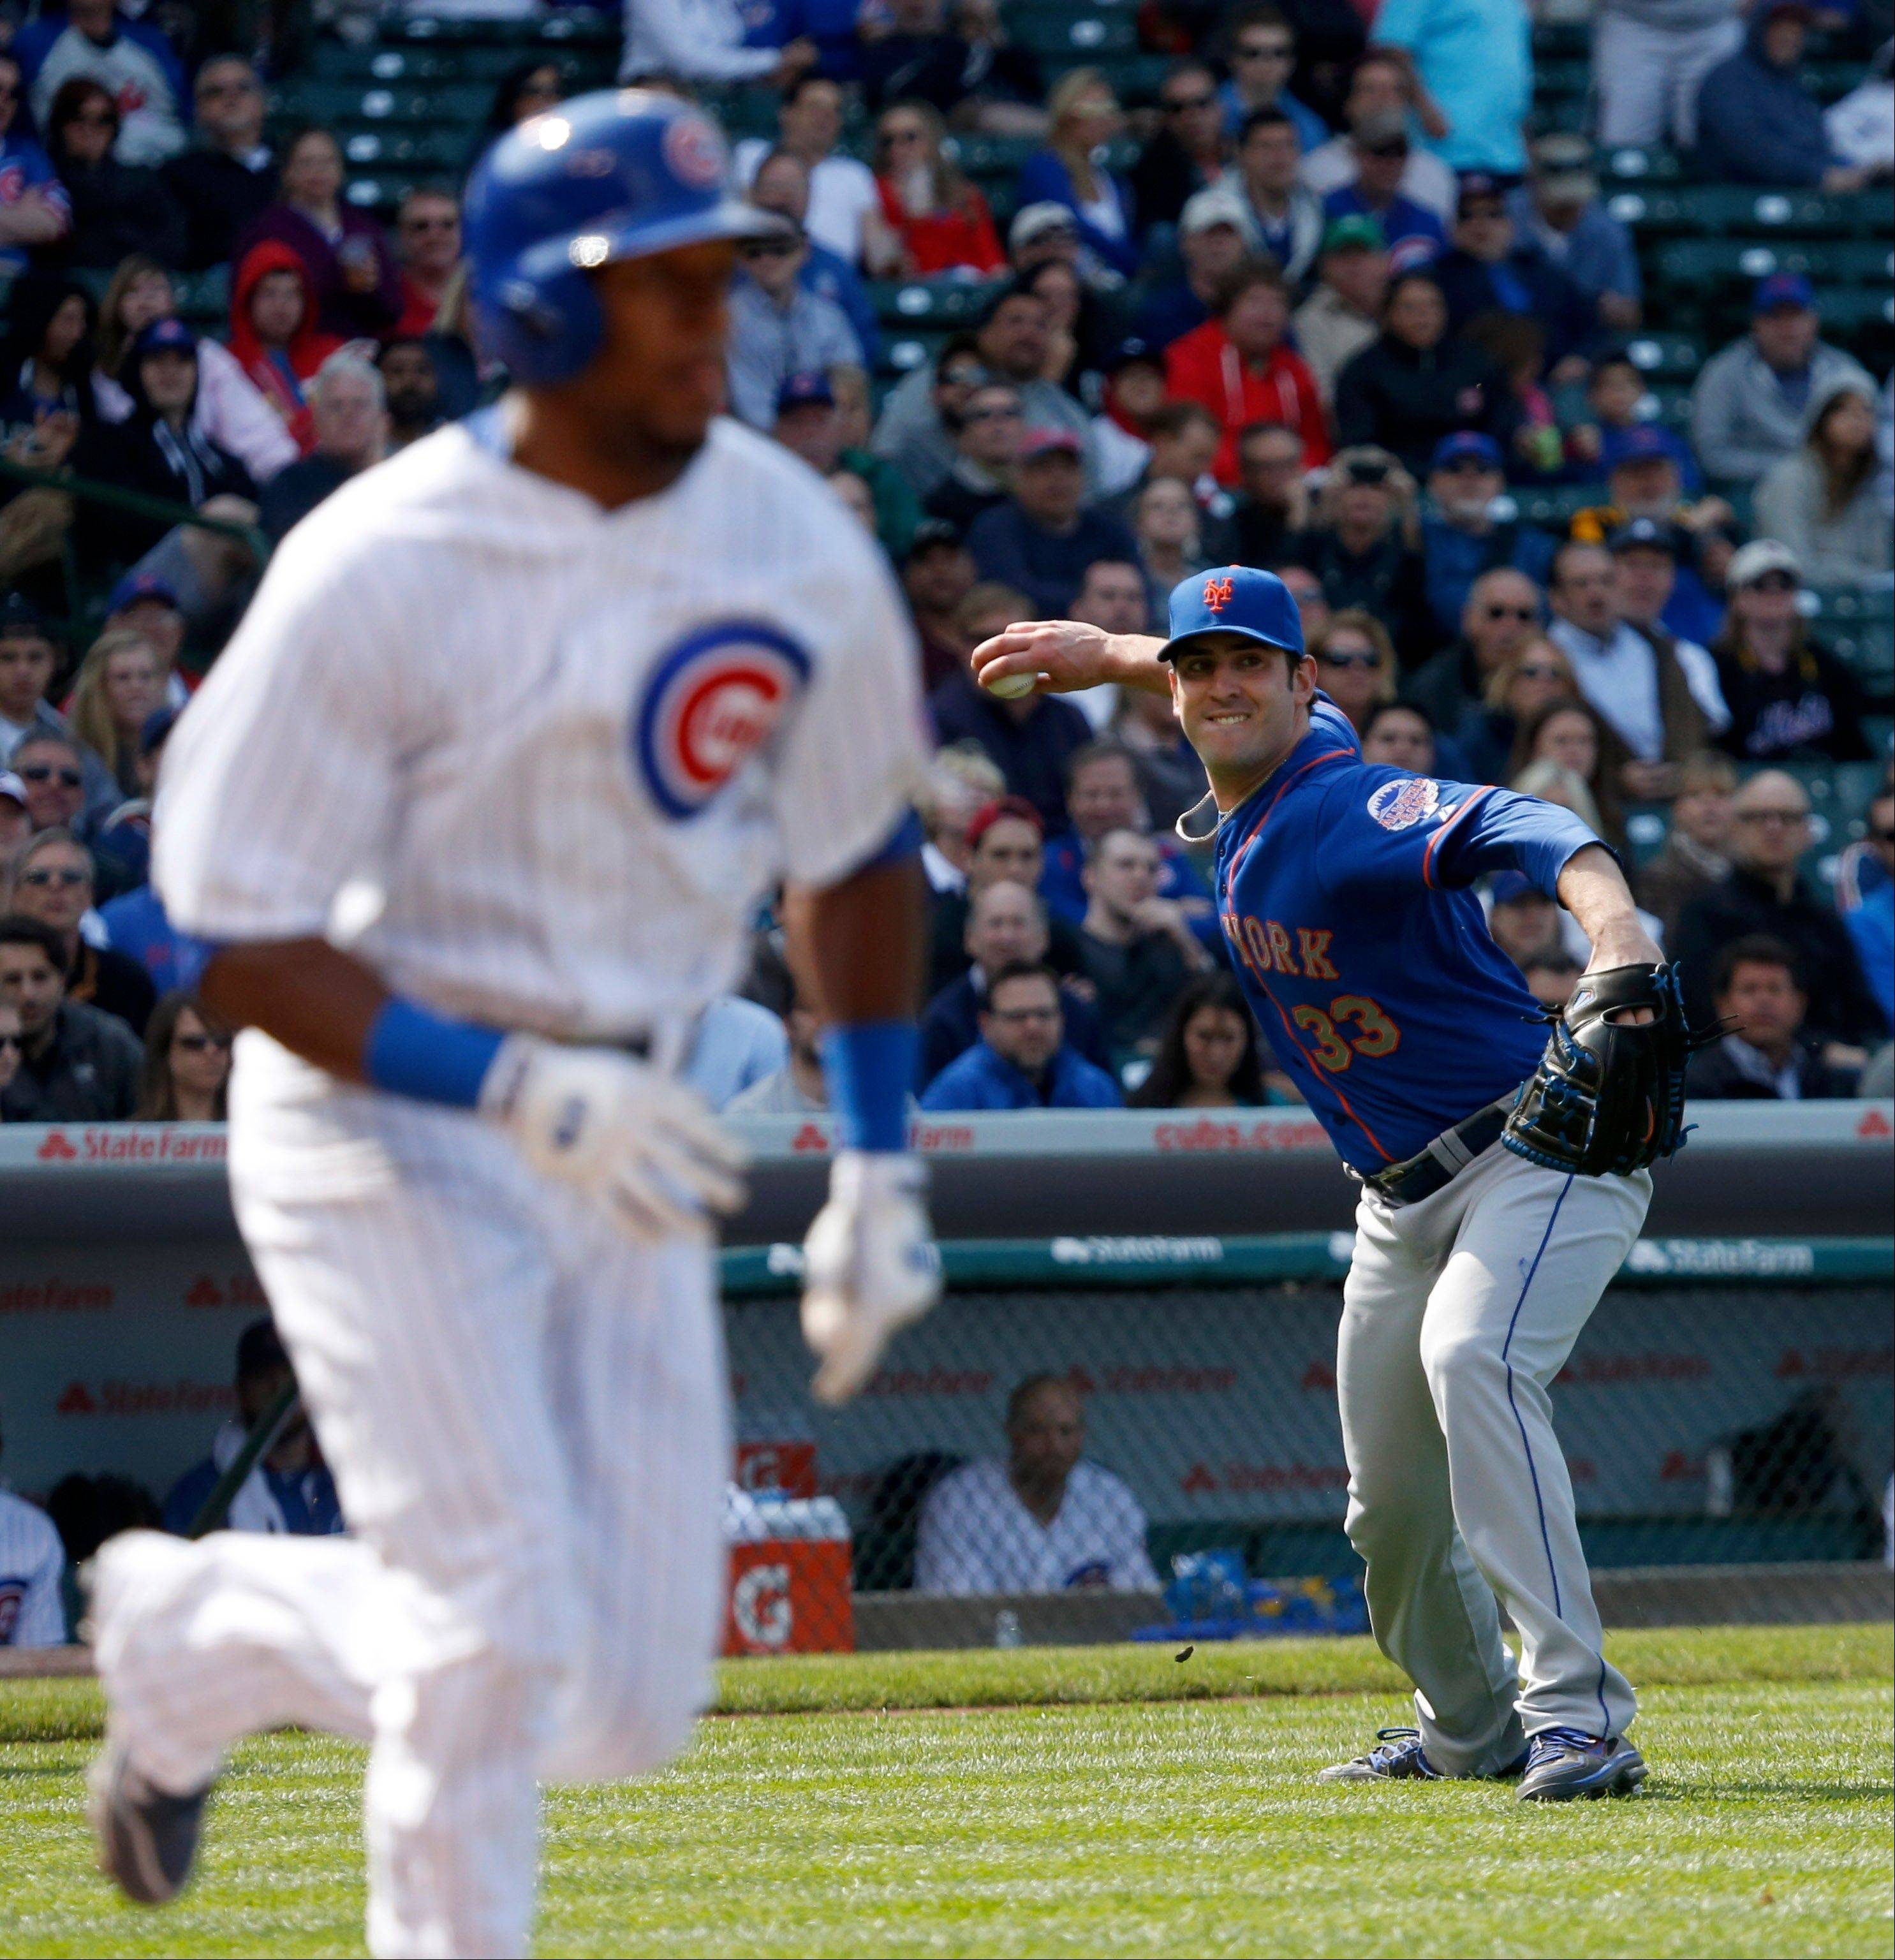 New York Mets starting pitcher Matt Harvey, right, fields a bunt by Chicago Cubs pinch hitter Julio Borbon and throws him out at first during the eighth inning of a baseball game Friday, May 17 2013, in Chicago. (AP Photo/Charles Rex Arbogast)